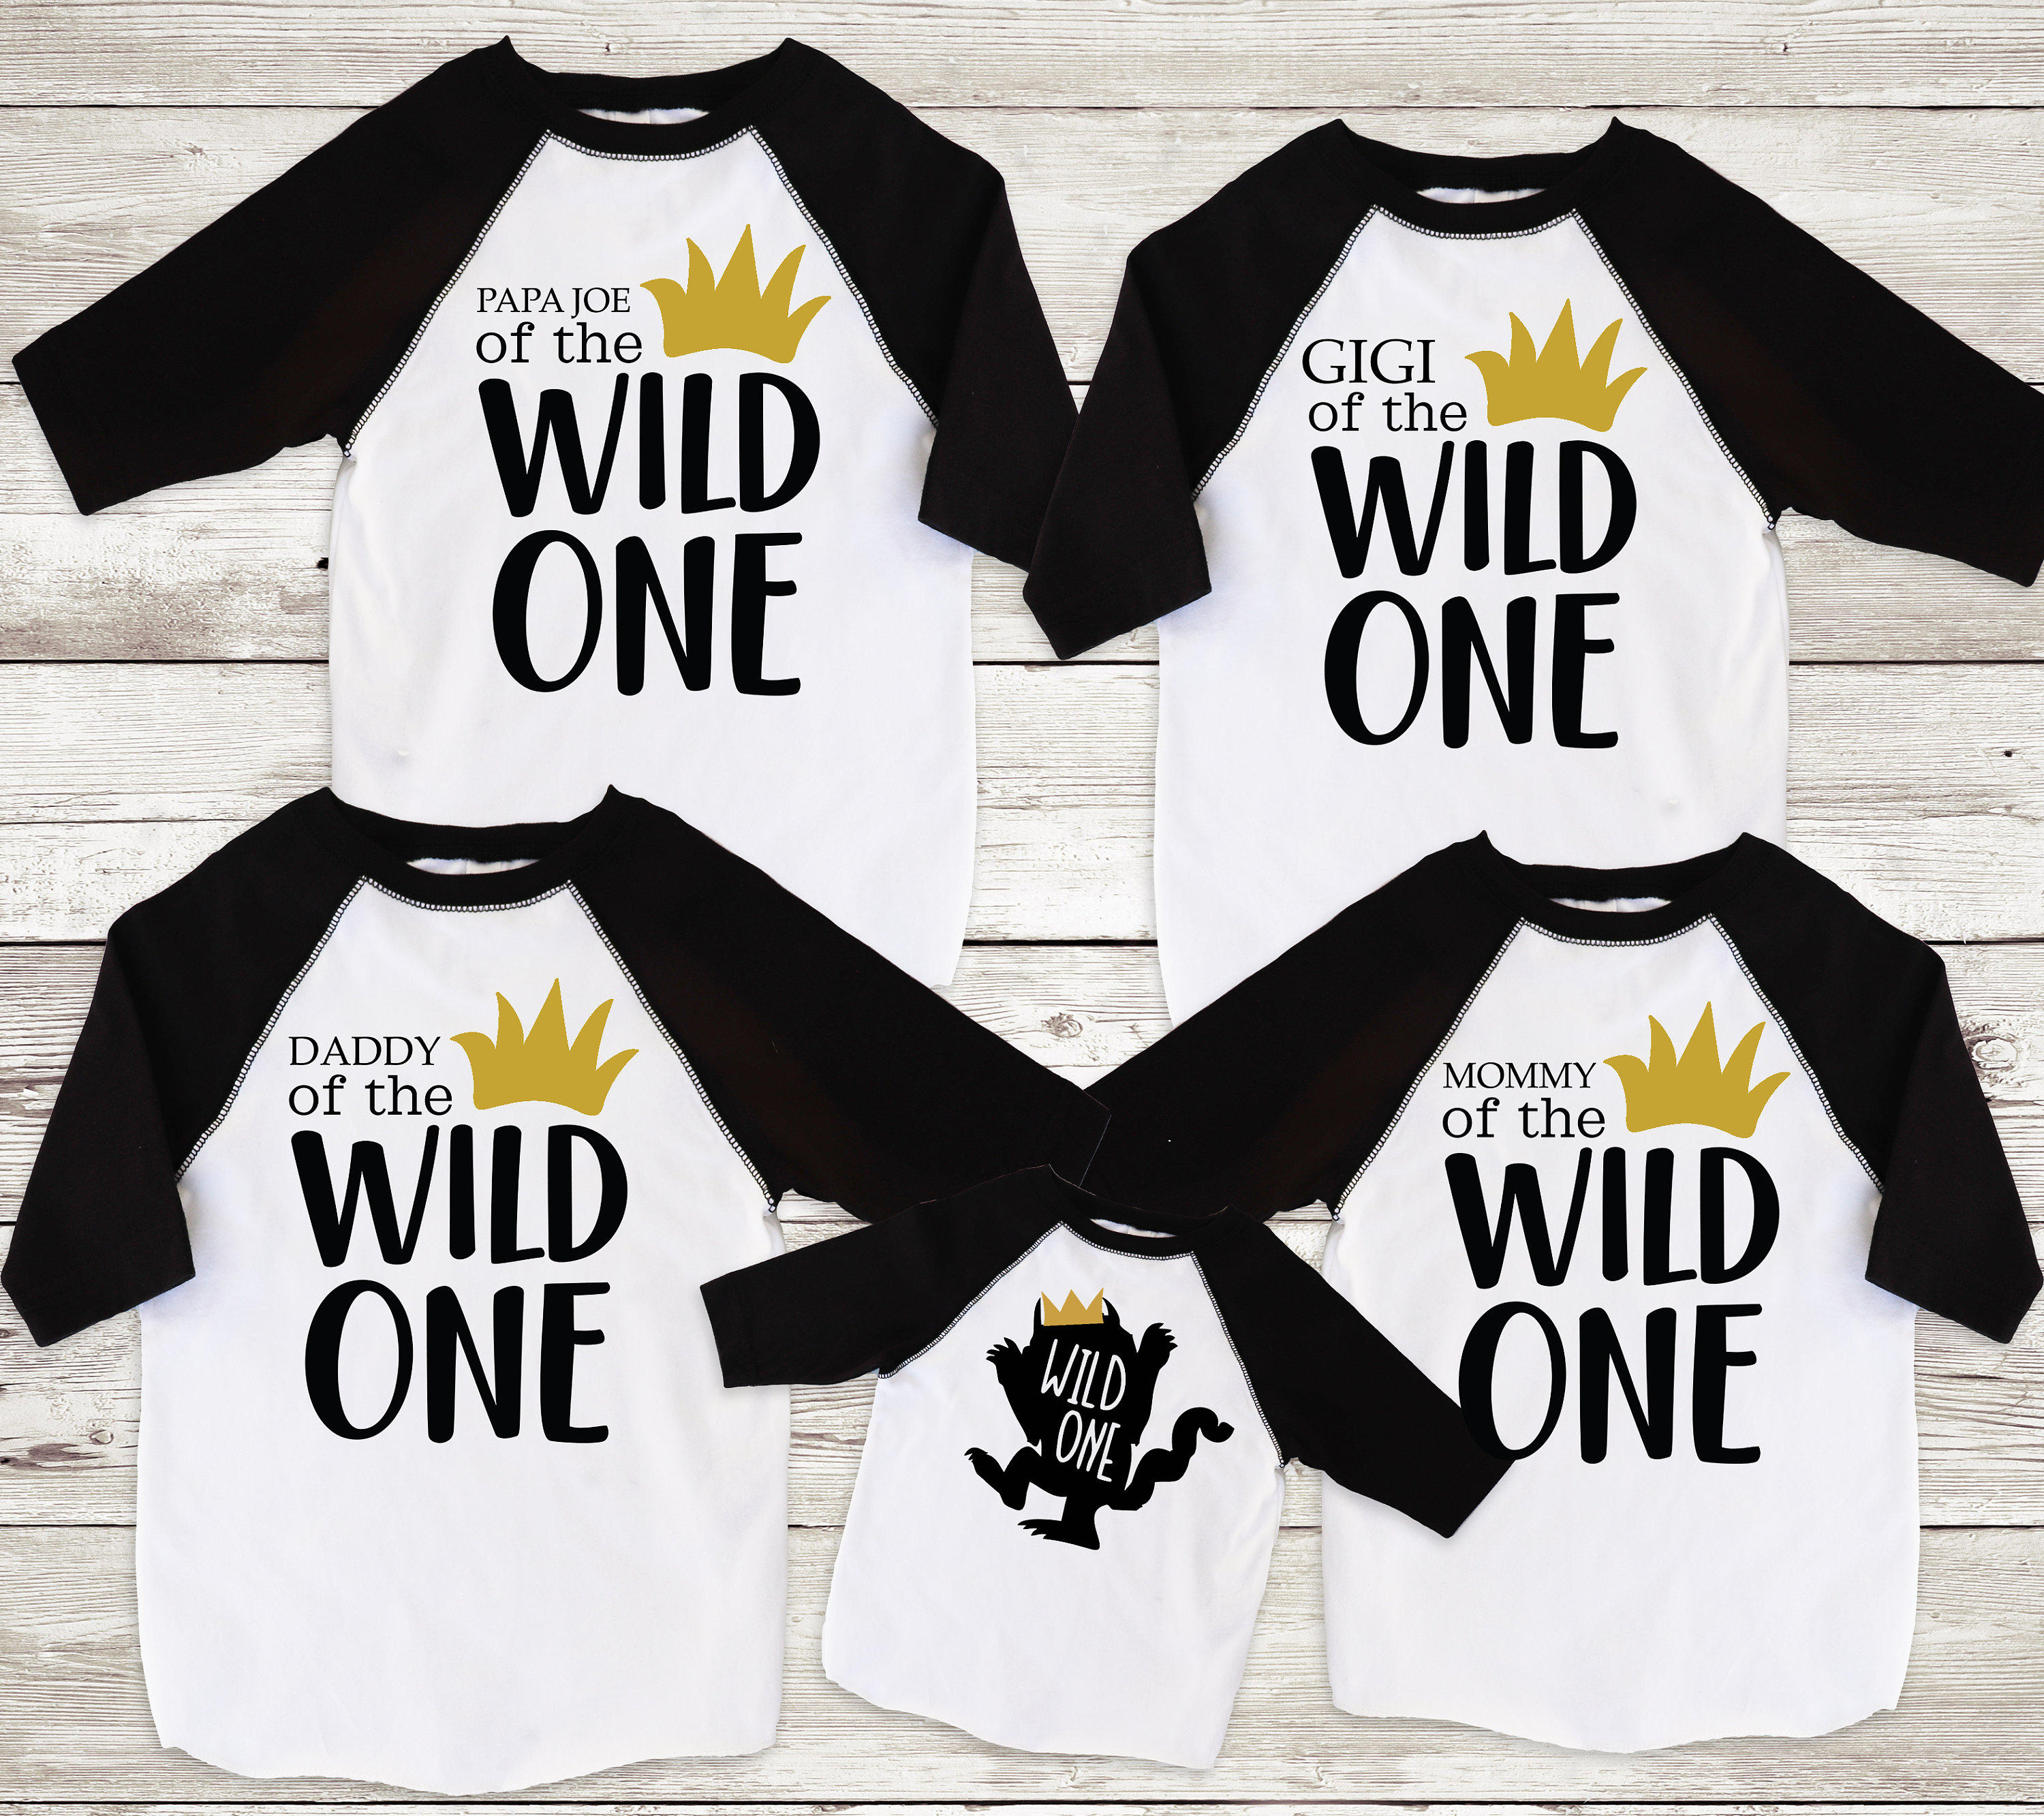 c5a3a33a Family Wild One Shirts Mom of the Wild One Dad of the Wild | Etsy